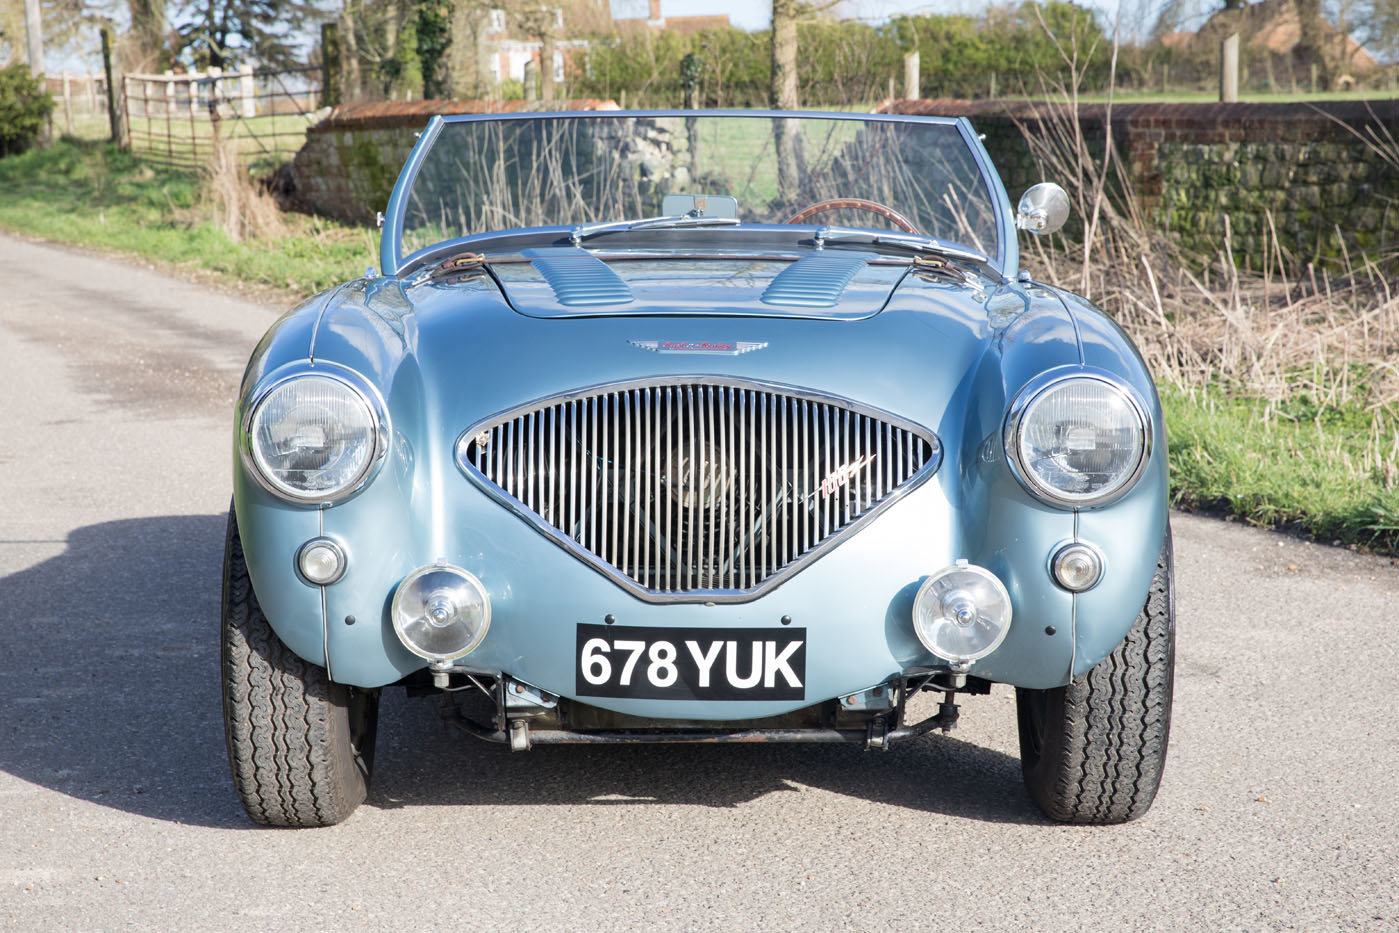 1955 Austin Healey 100/4 BN2 | Healey Blue, M Specification SOLD (picture 2 of 6)